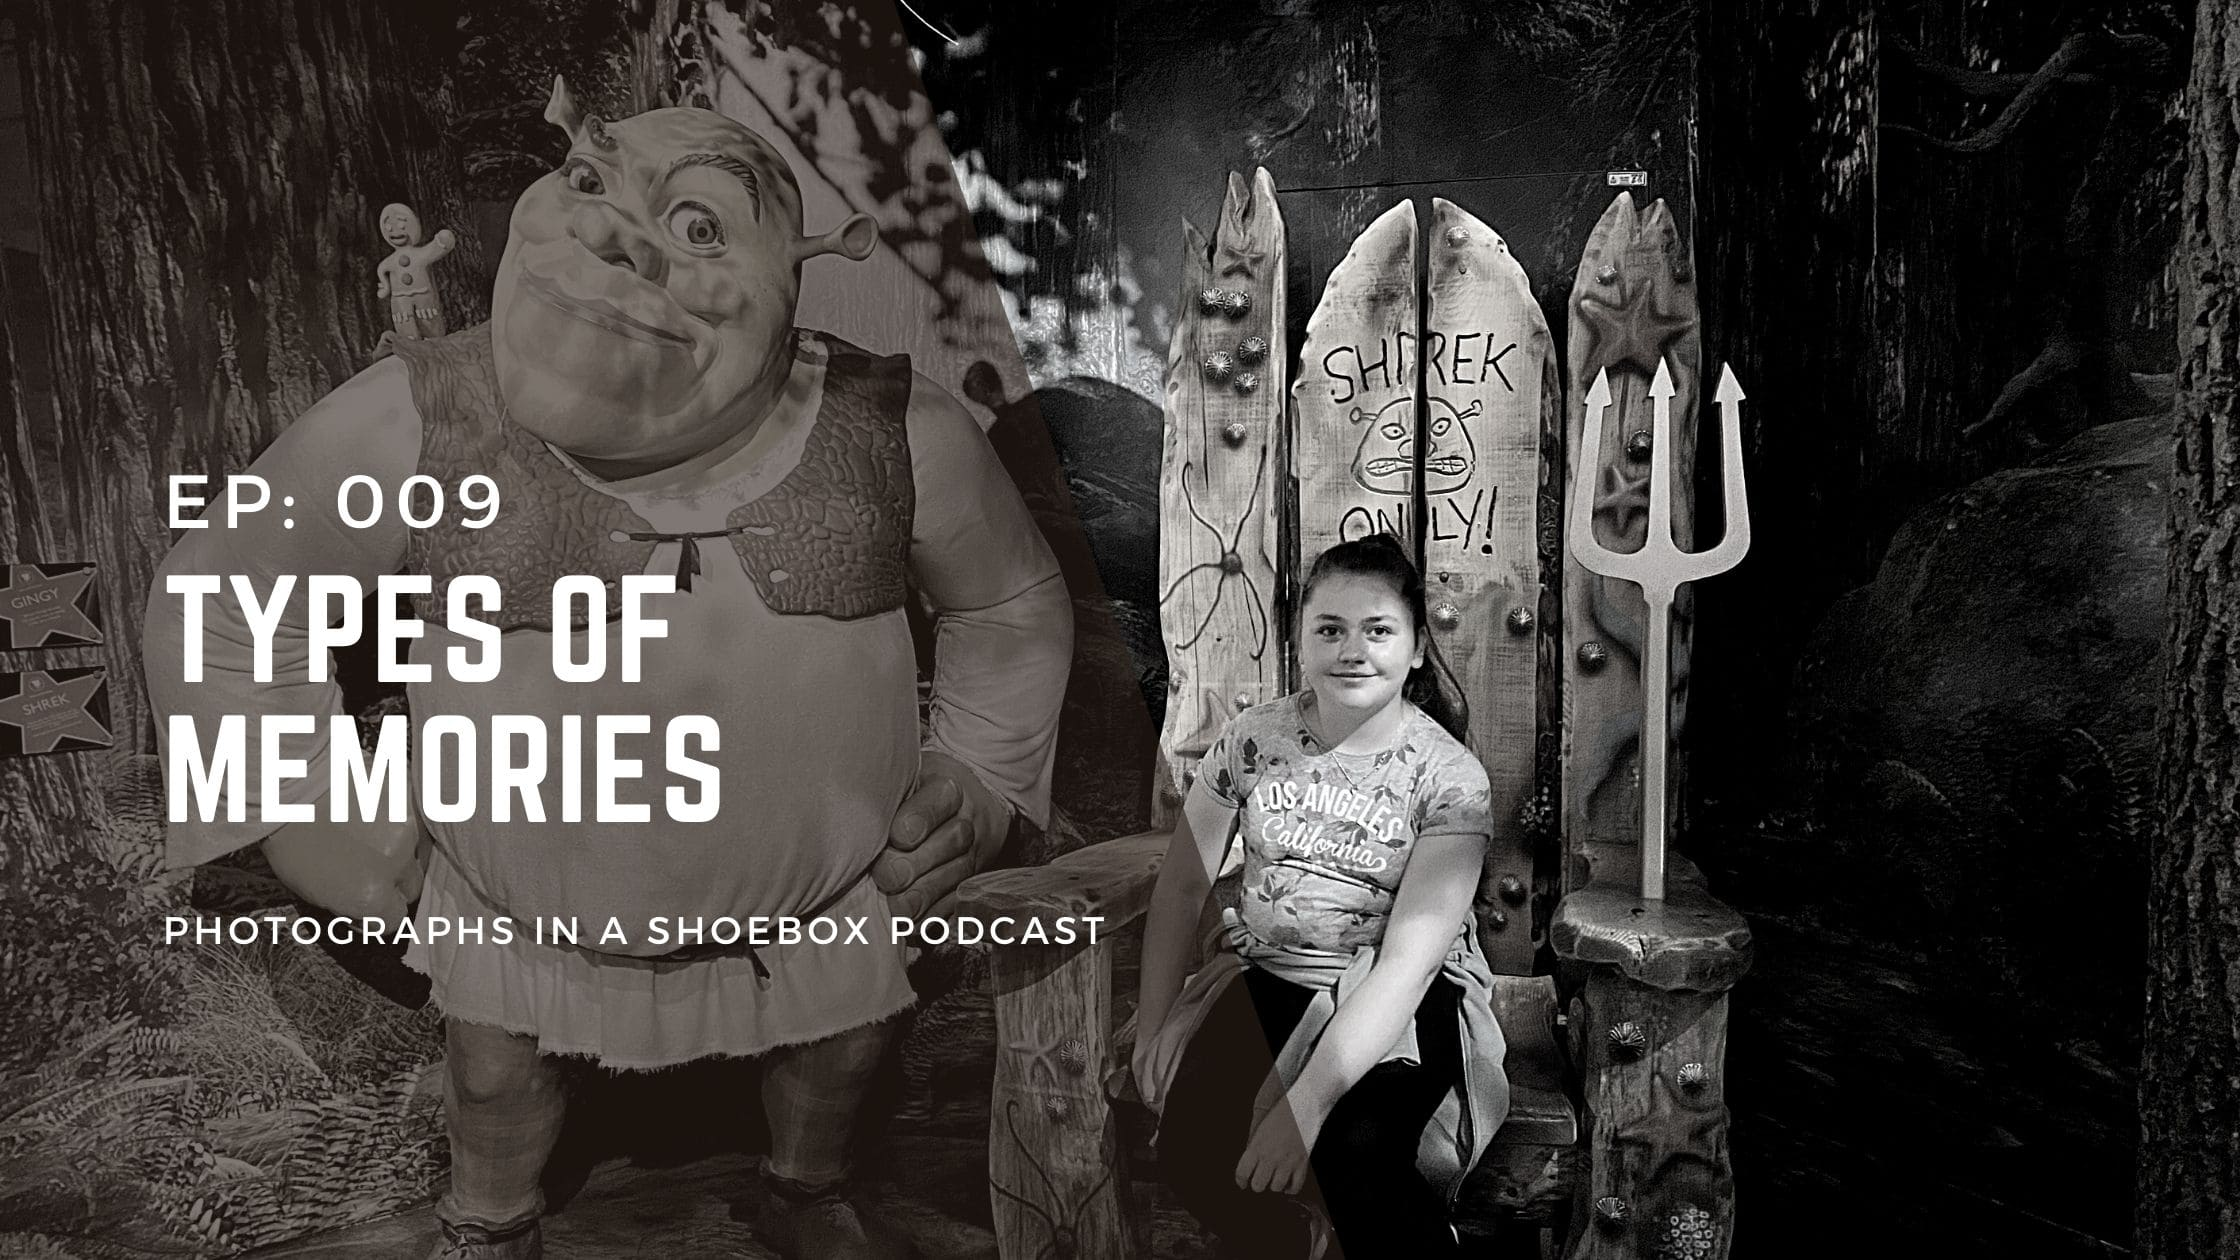 podcast title graphic for Types of memories: wax works